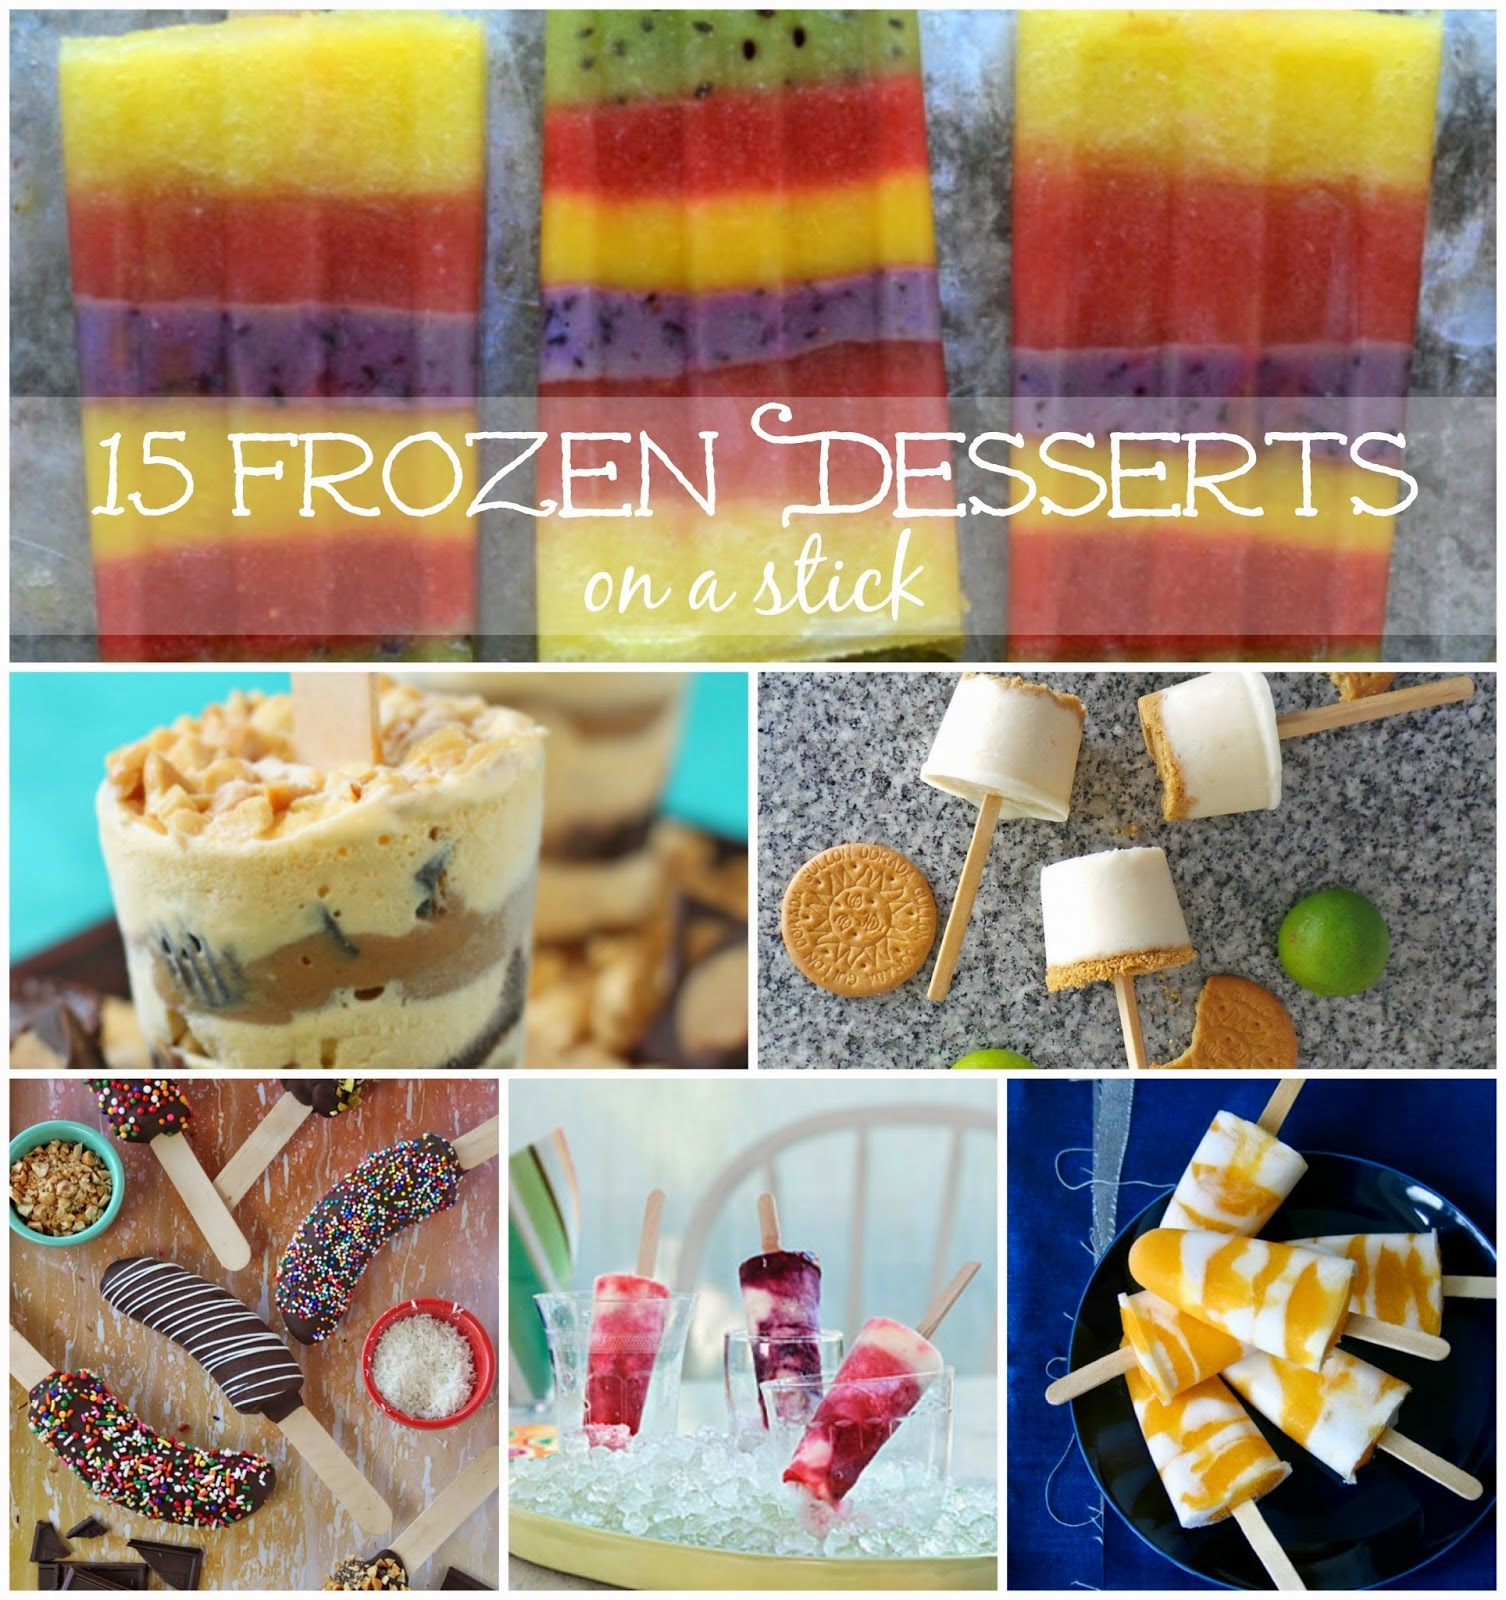 15 Frozen Desserts on a Stick, shared by Melissa Kaylene